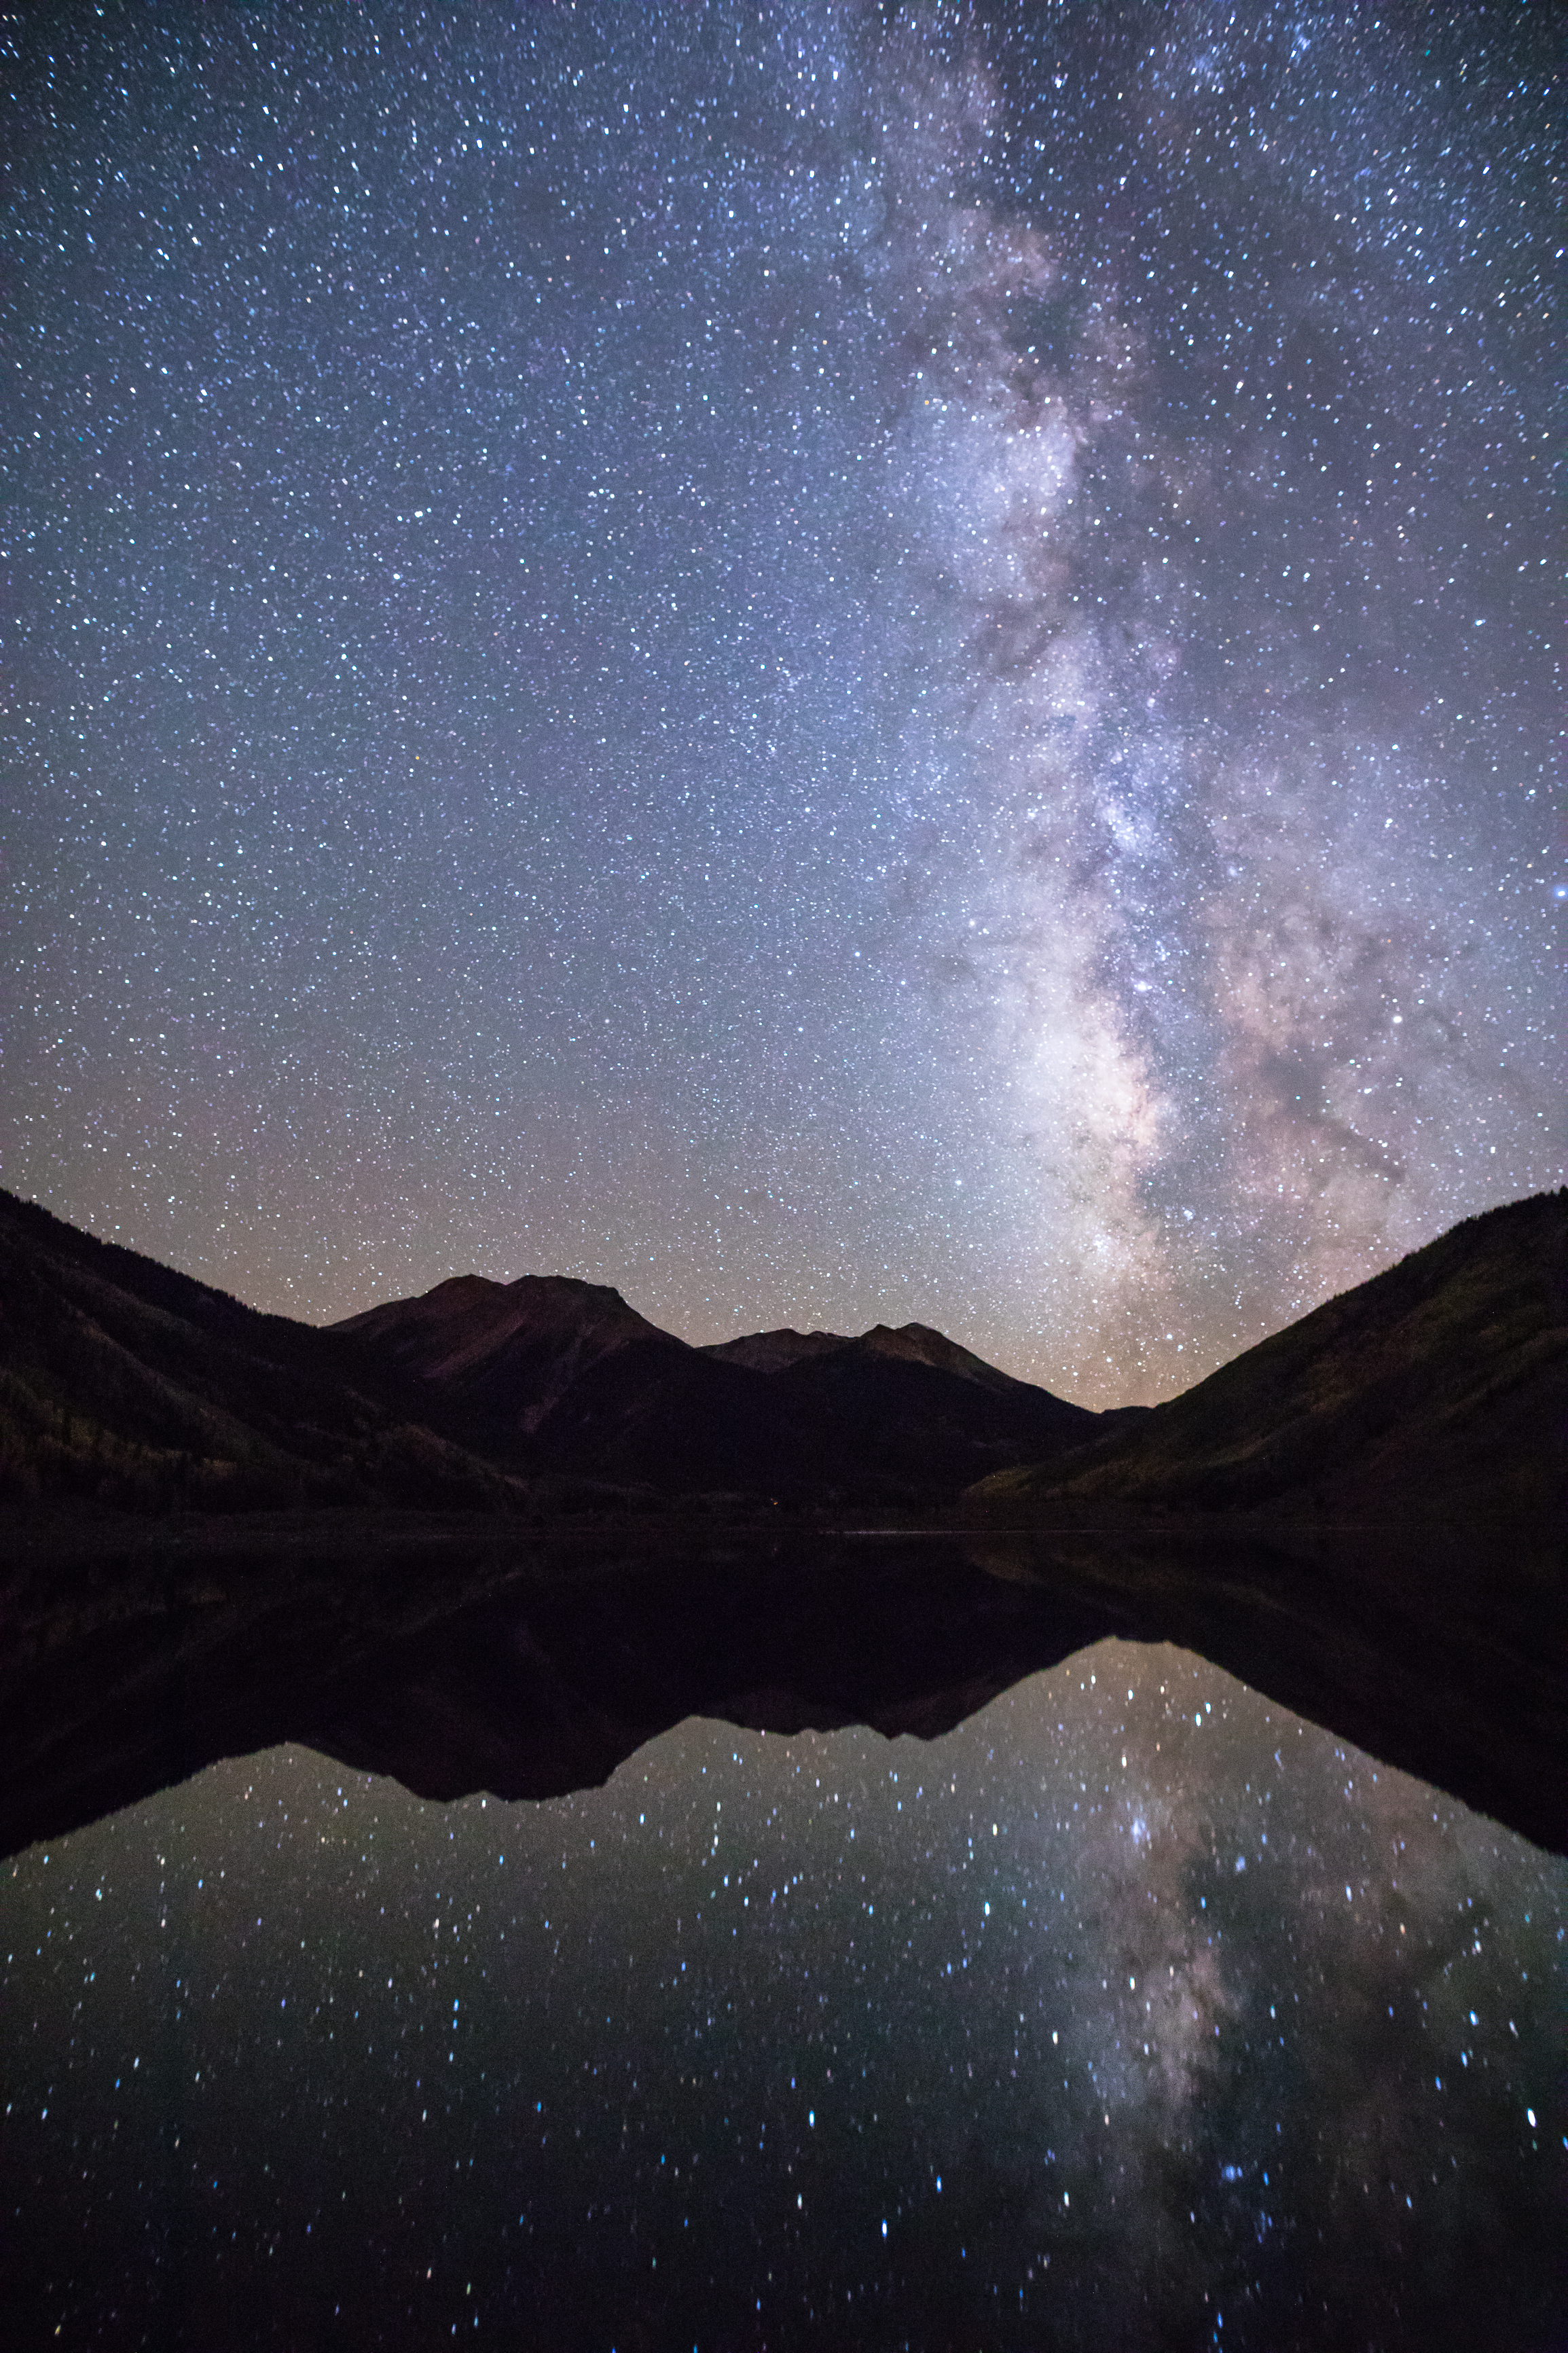 Milky Way Reflection over Red Mountain, Image # 1736